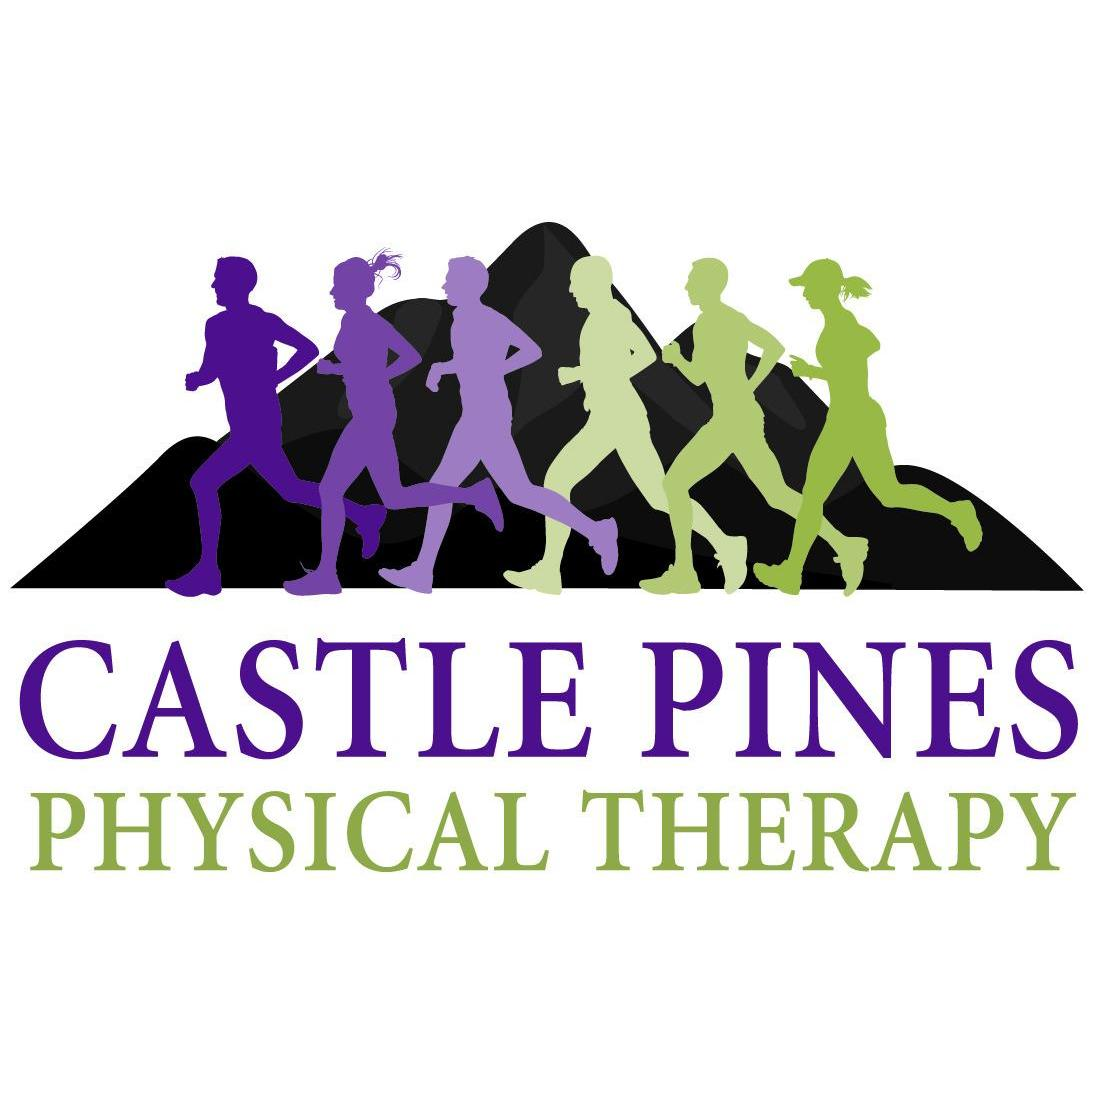 Castle Pines Physical Therapy